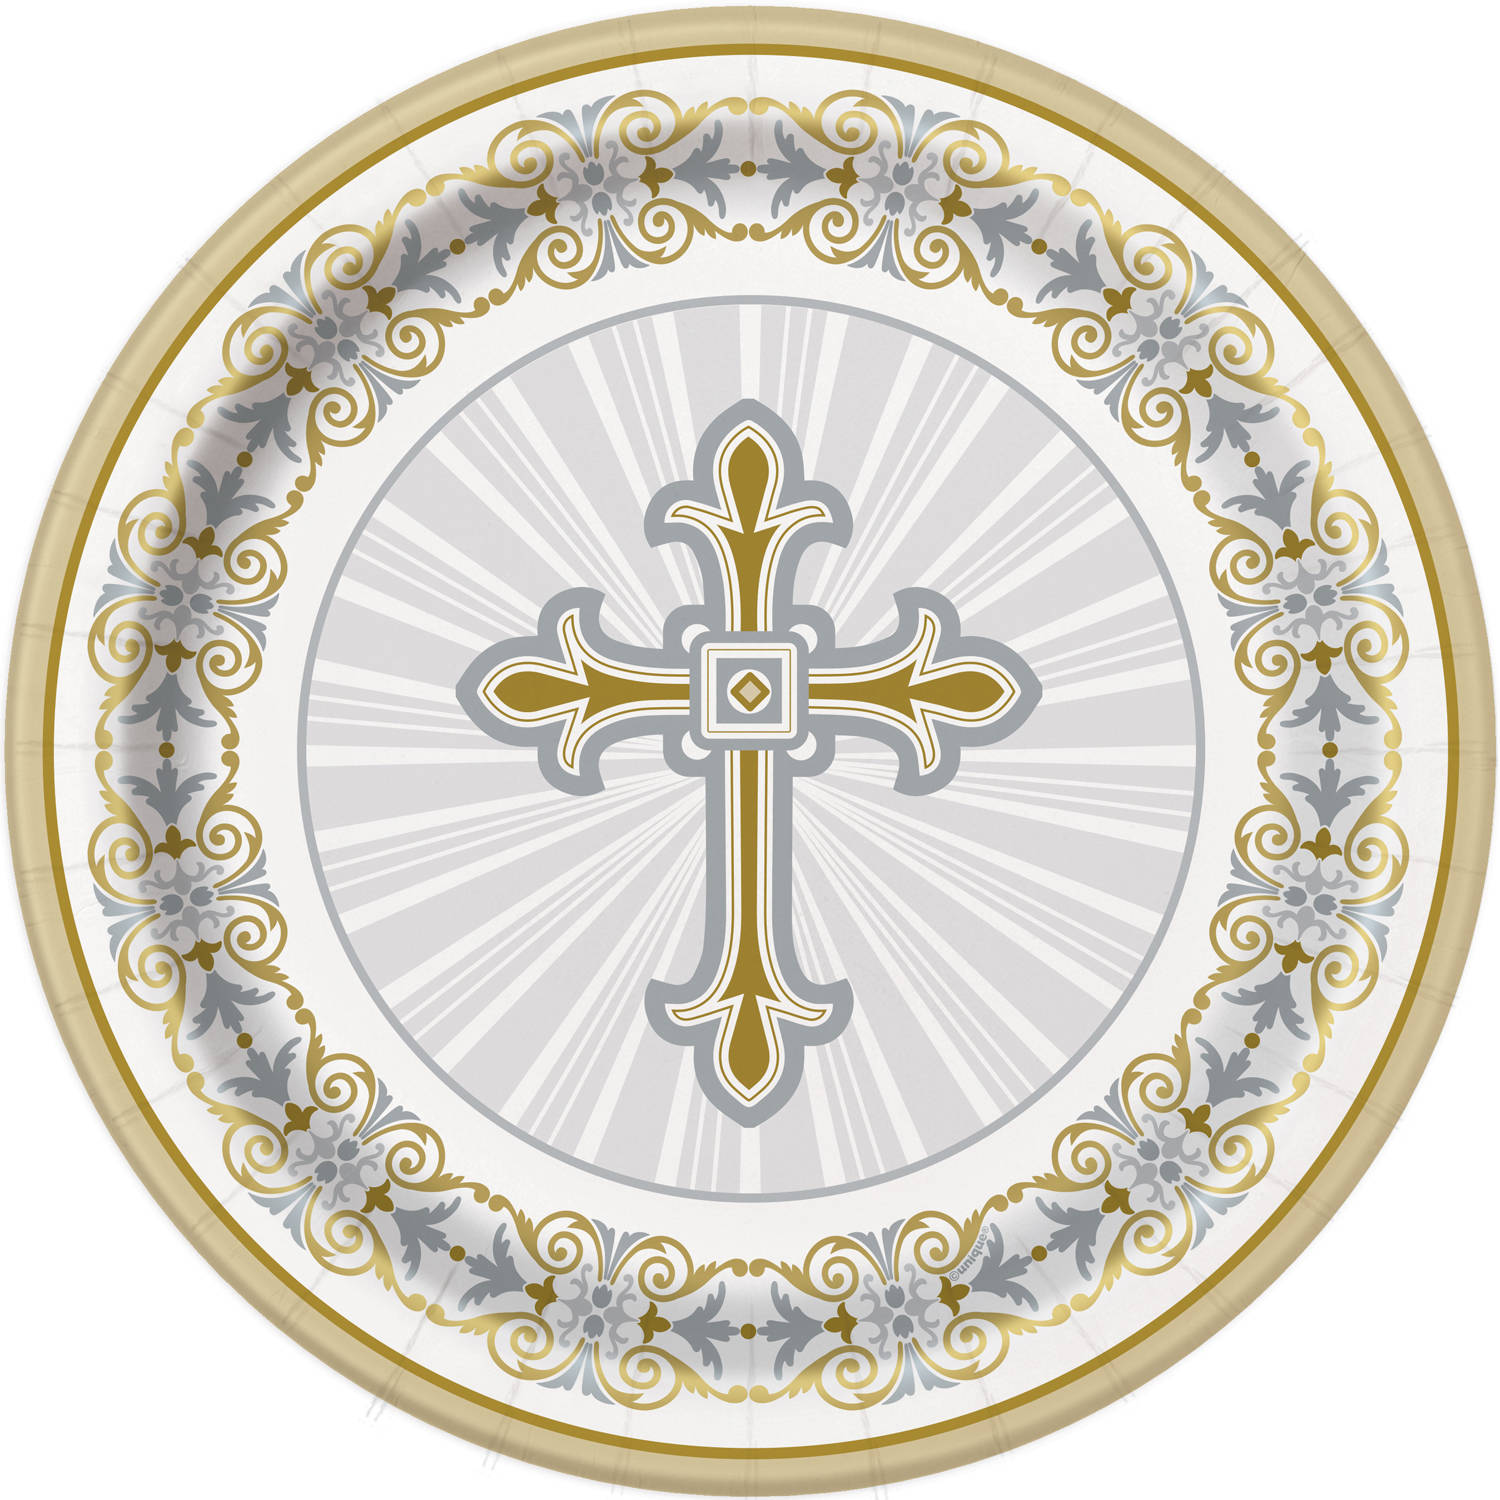 Gold & Silver Radiant Cross Religious Paper Dinner Plates, 9in, 8ct